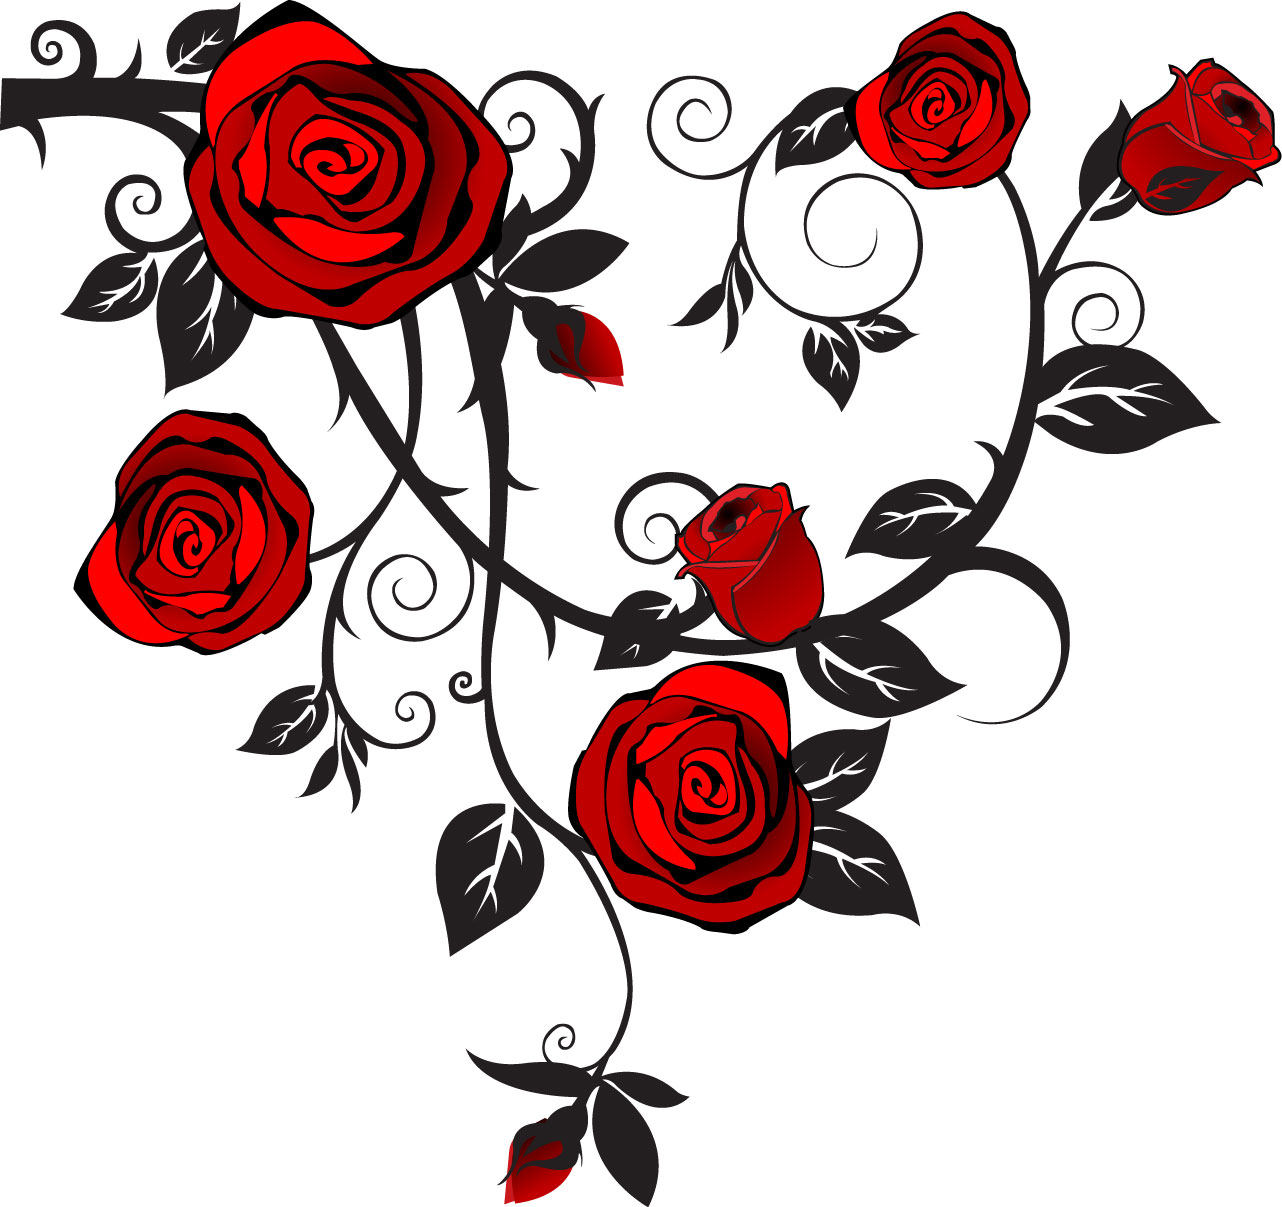 16 Free Rose Vector Graphics Images